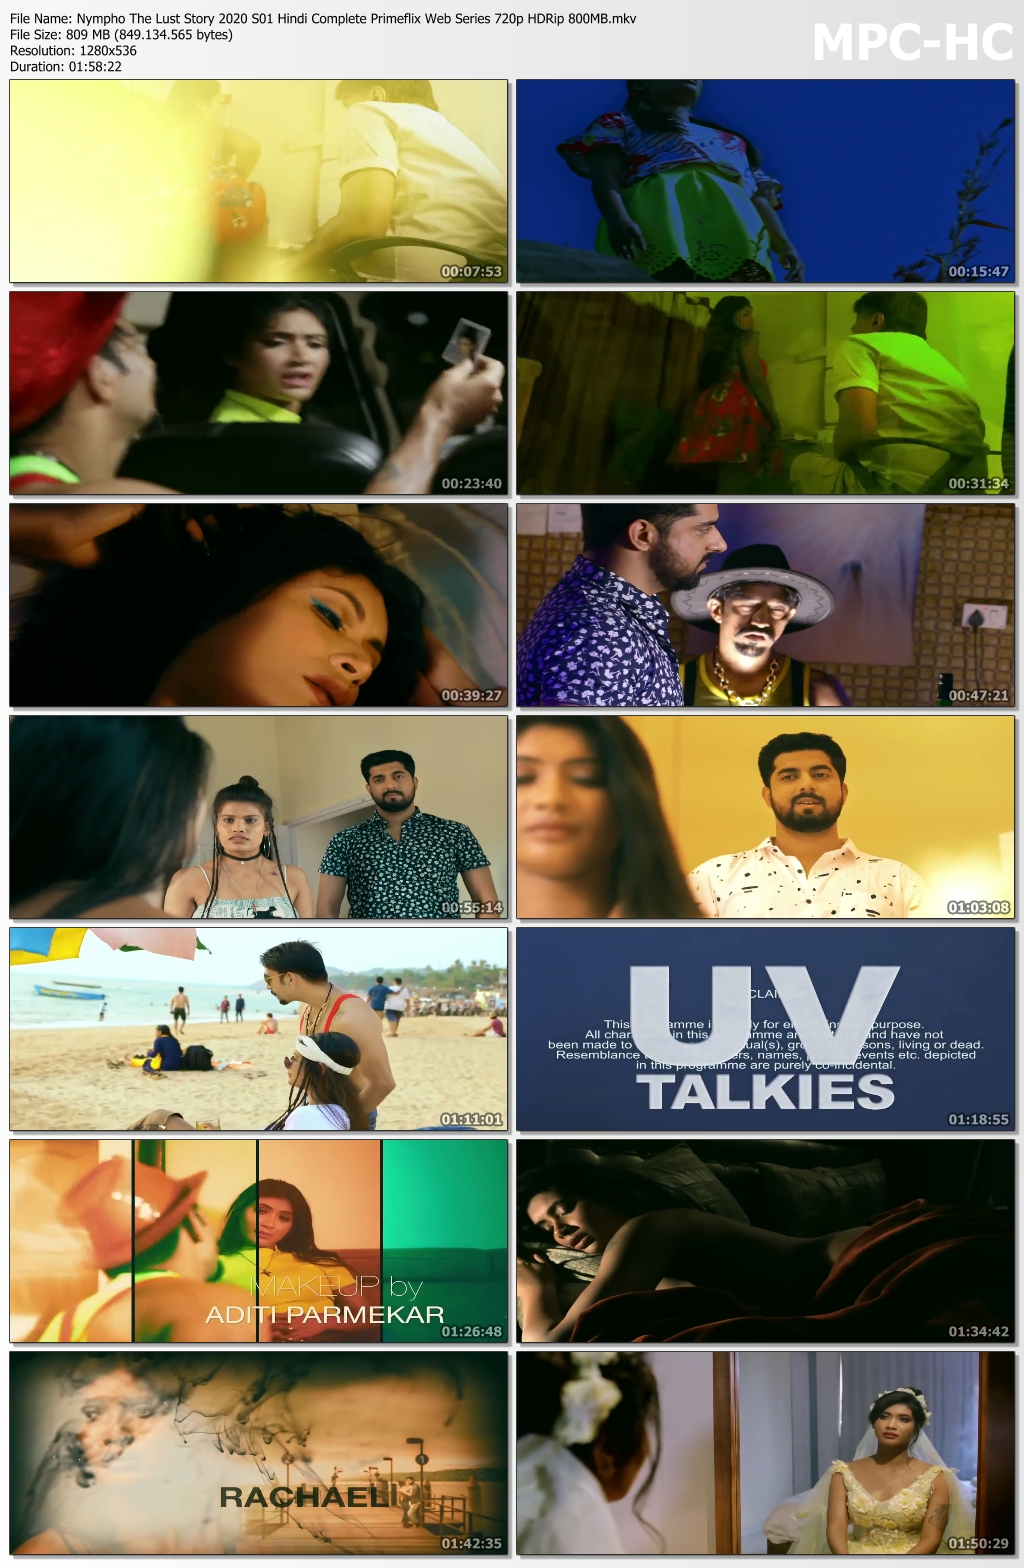 Nympho-The-Lust-Story-2020-S01-Hindi-Complete-Primeflix-Web-Series-720p-HDRip-800-MB-mkv-thumbs